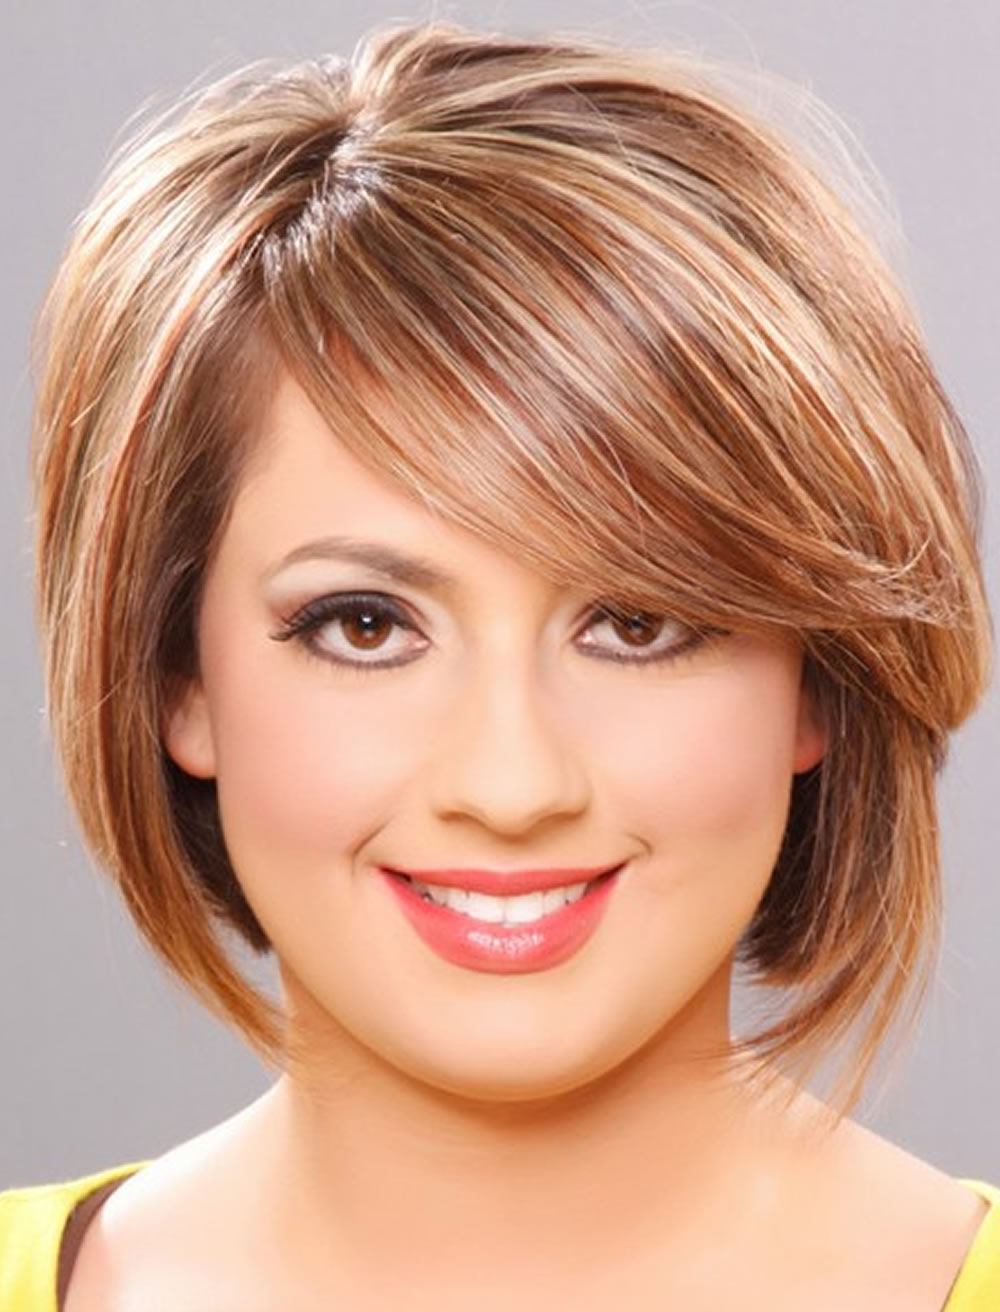 Short Haircuts For Round Face Thin Hair Ideas For 2018 – Page 3 Throughout Short Hair For Round Face Women (View 7 of 25)